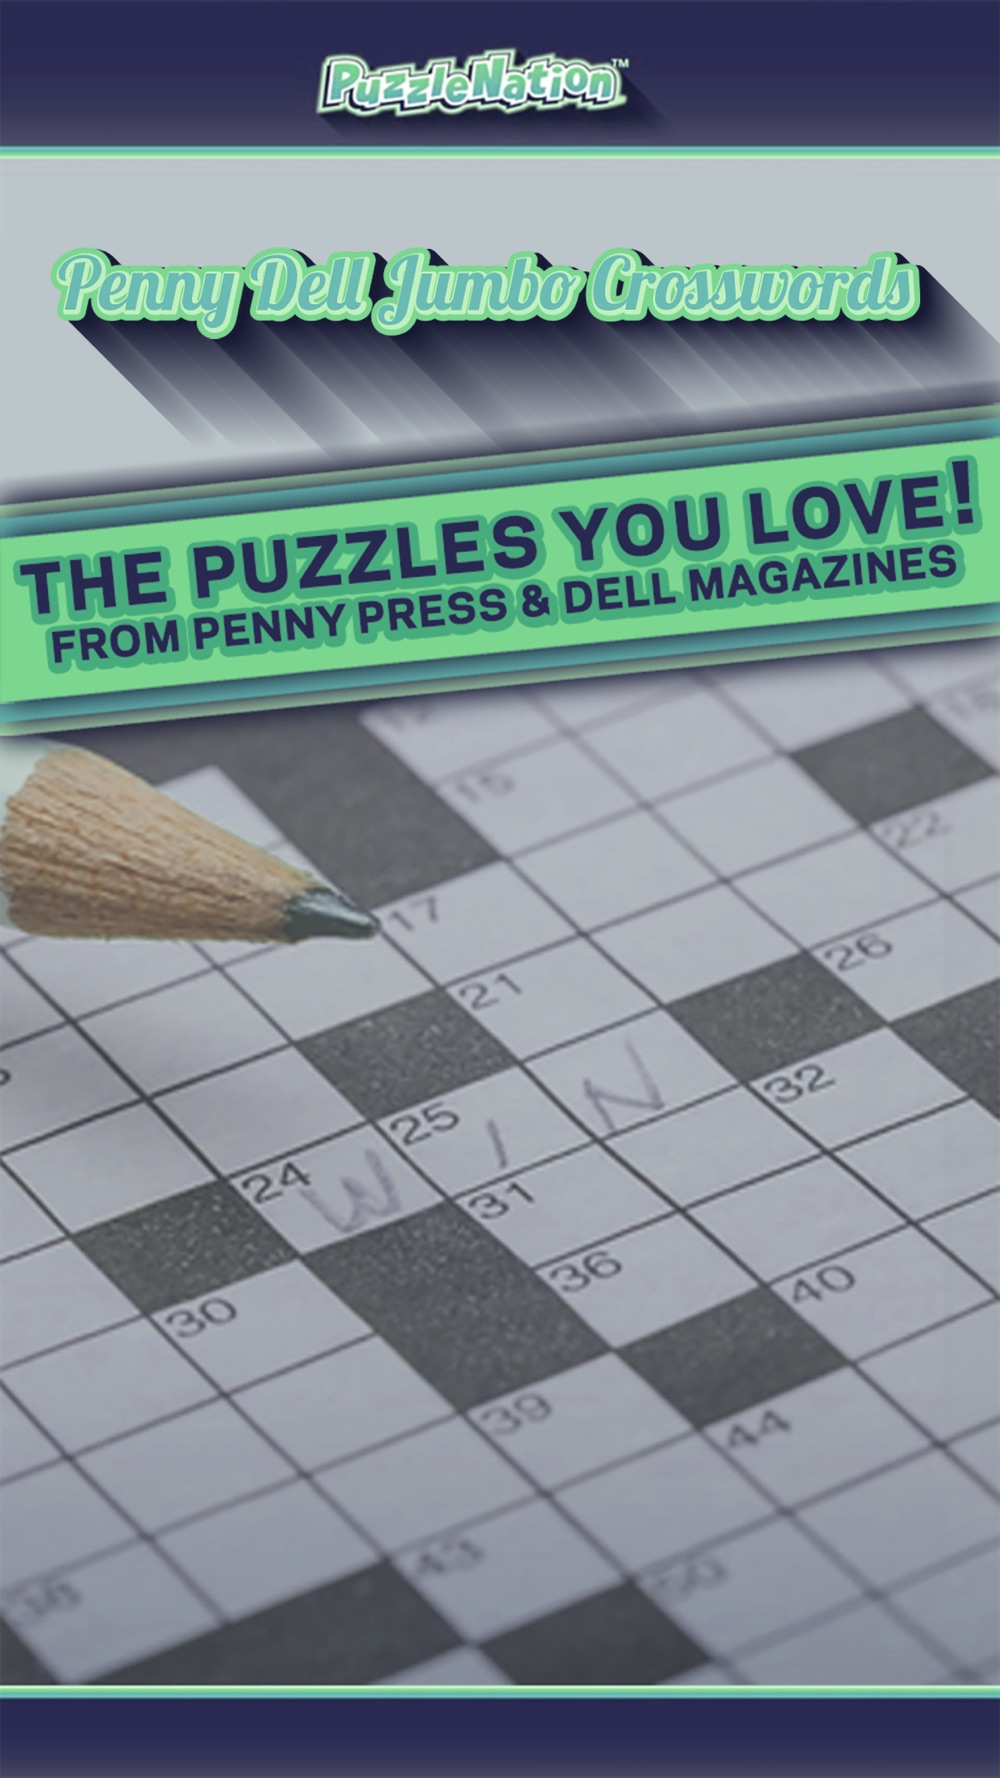 Penny Dell Jumbo Crosswords – Crossword Puzzles for Everyone!